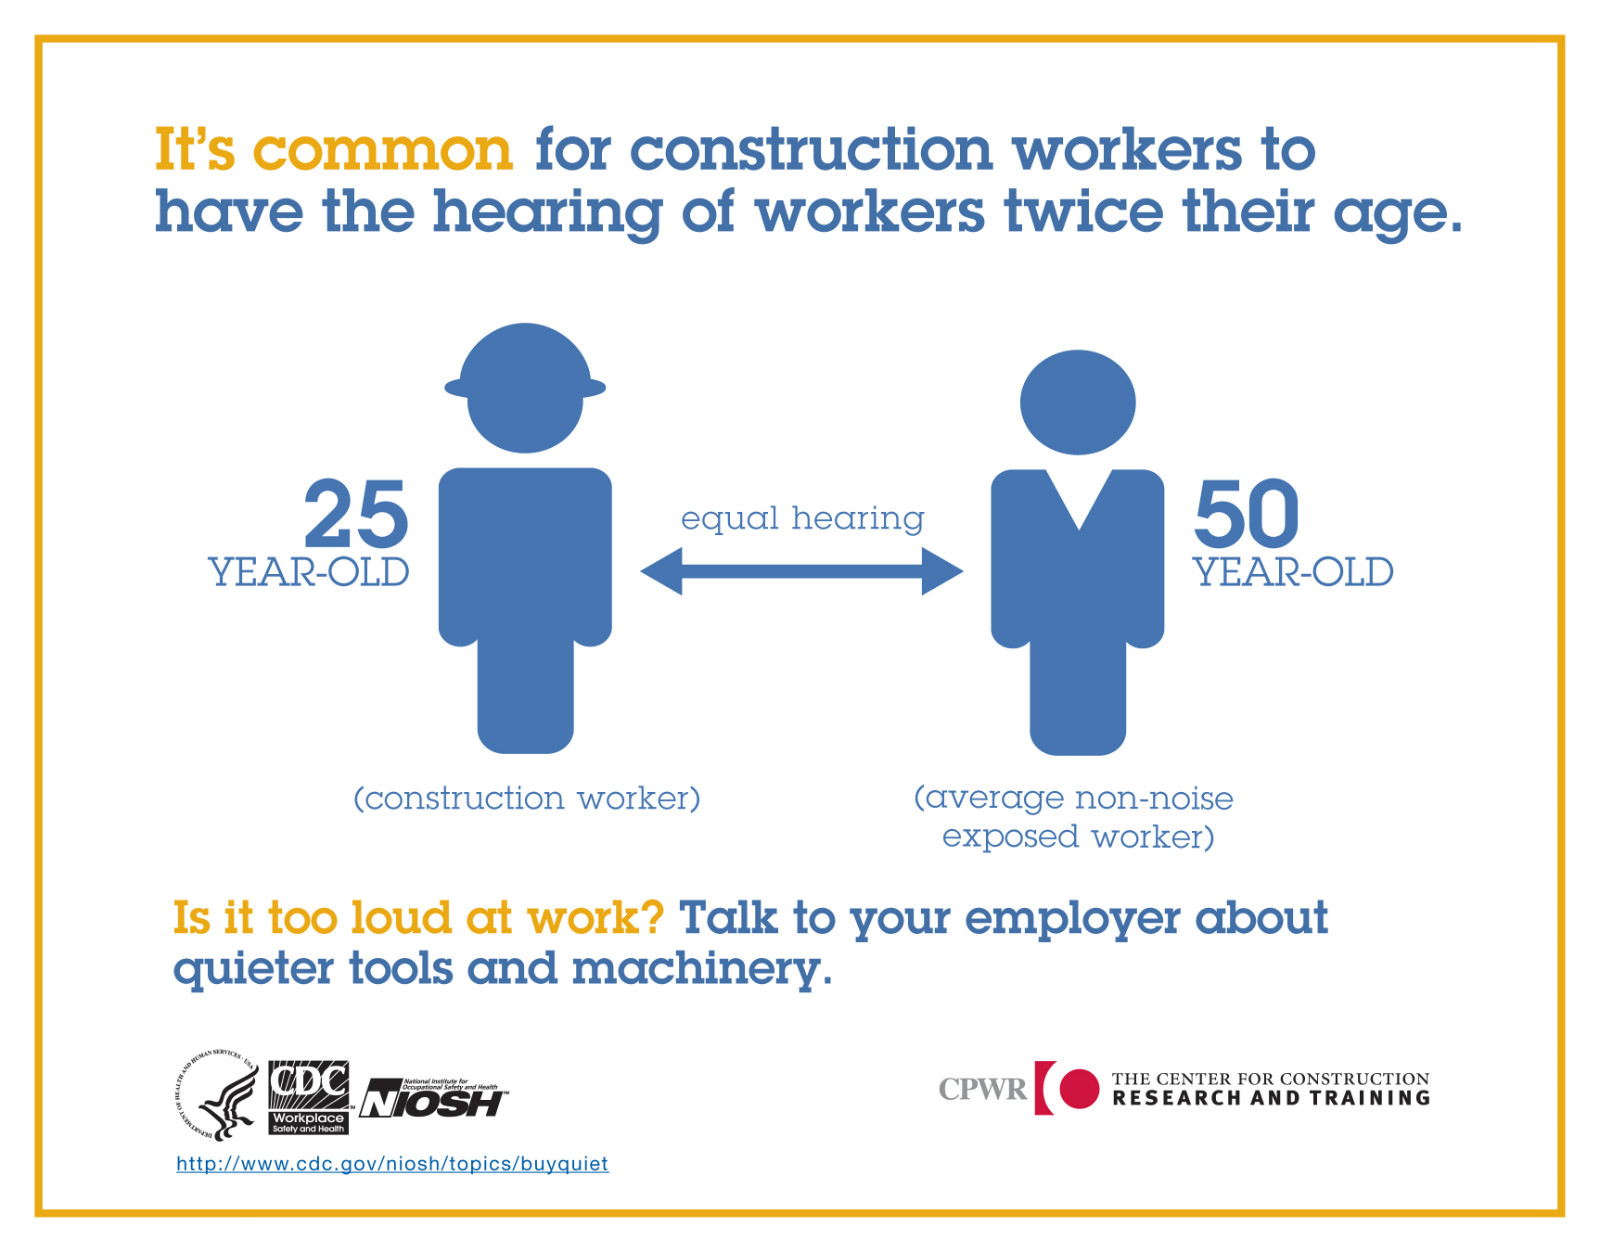 It's common for construction workers to have the hearing of workers twice their age.